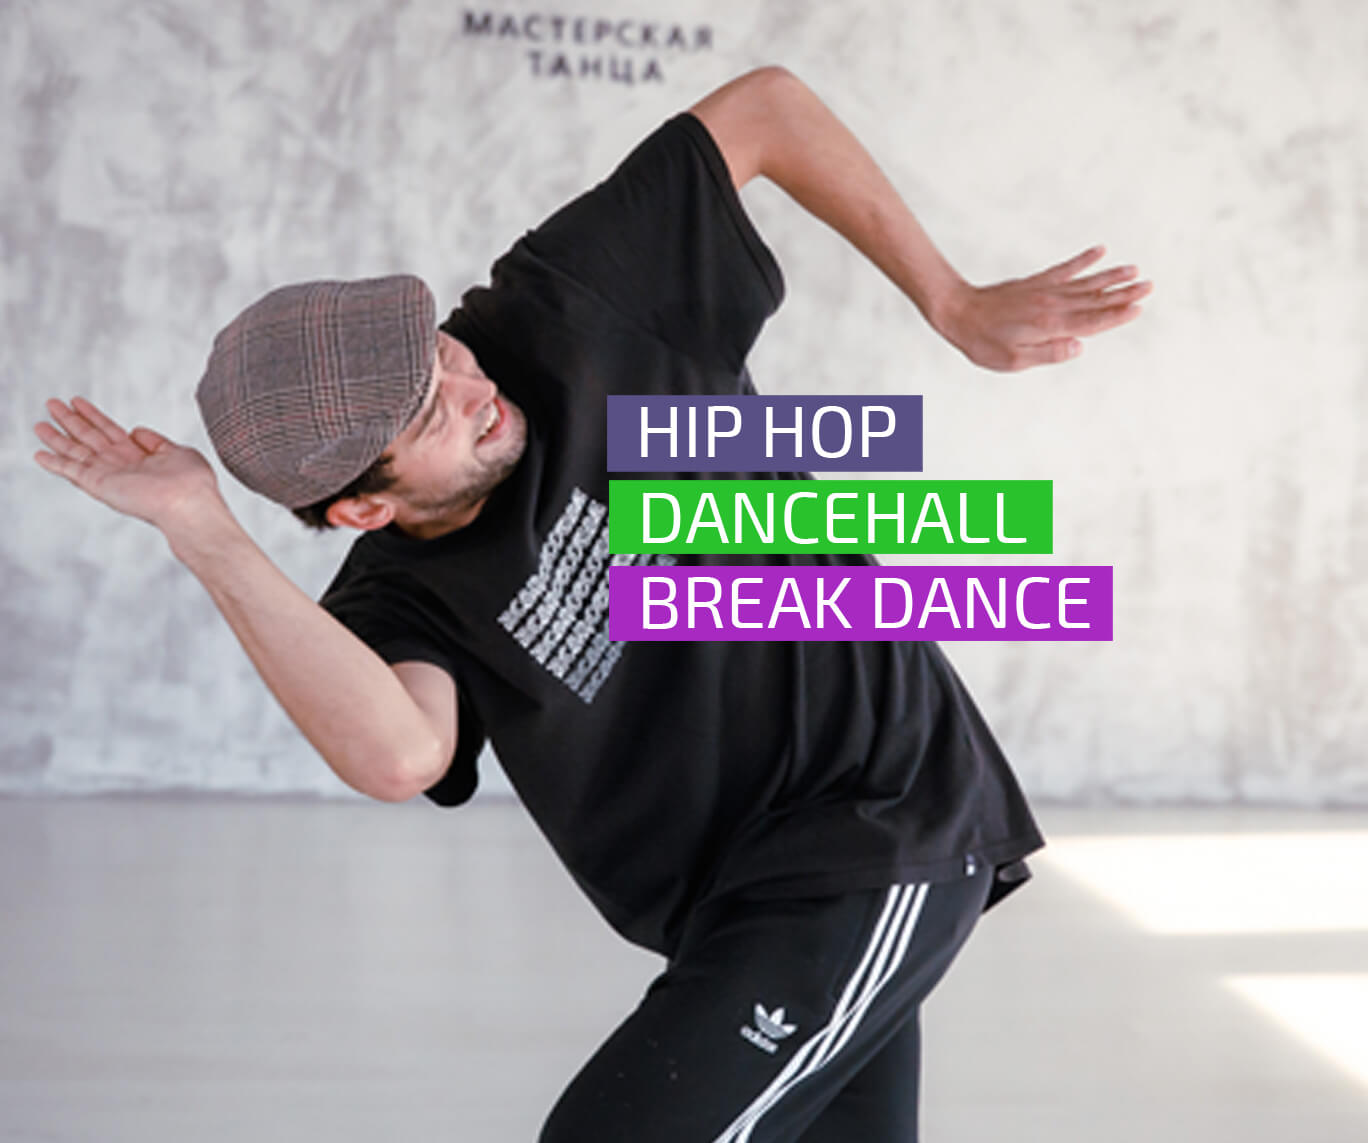 Hip hop, break dance, dancehall | Набор 2020-2021